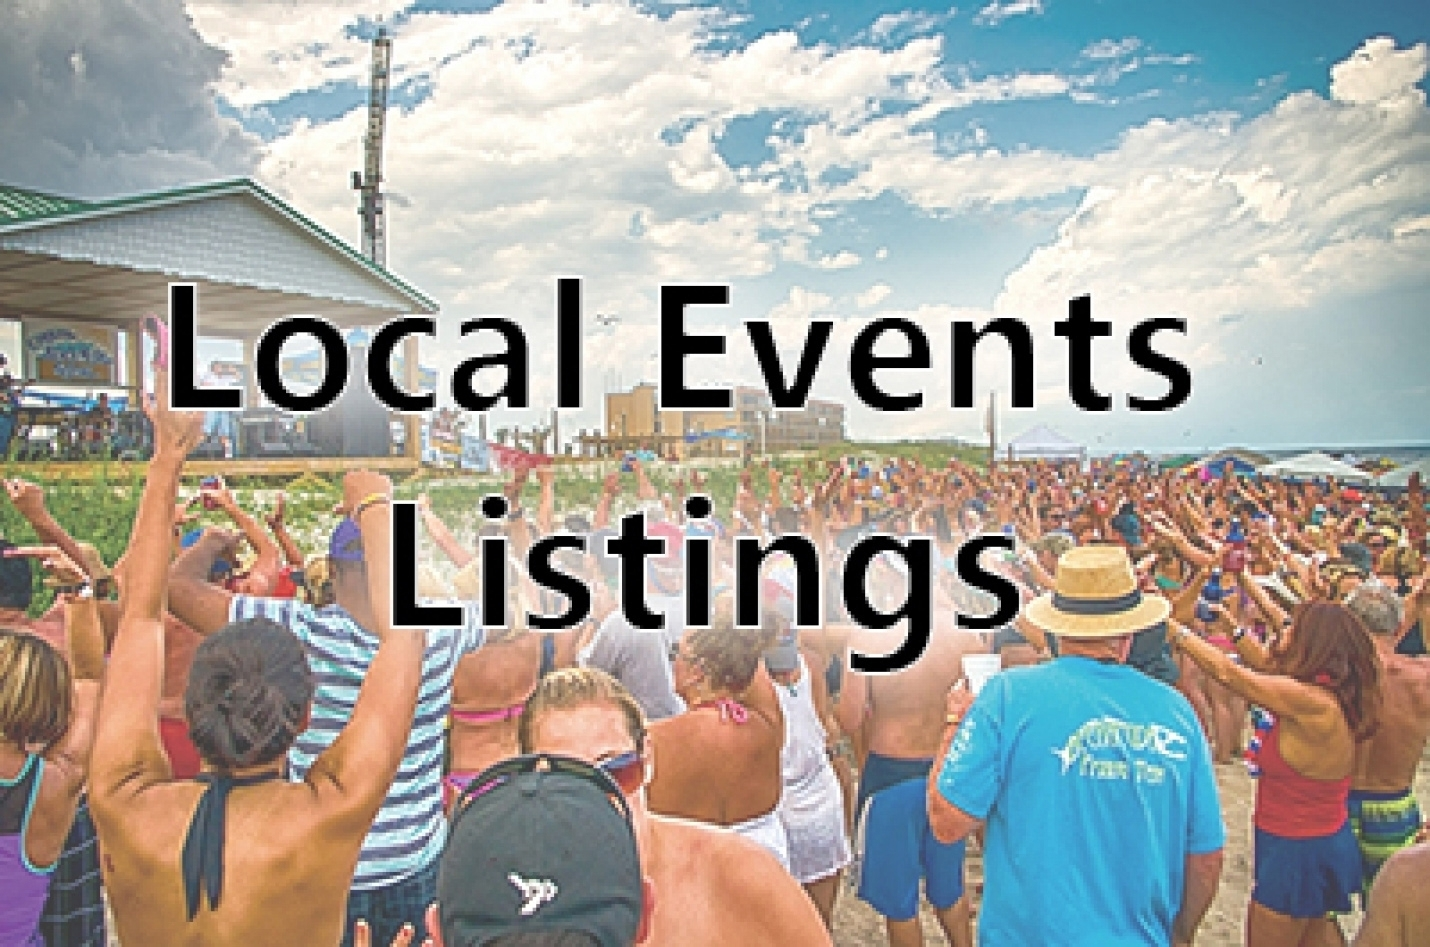 Local Events Listings For May 6th, 2020